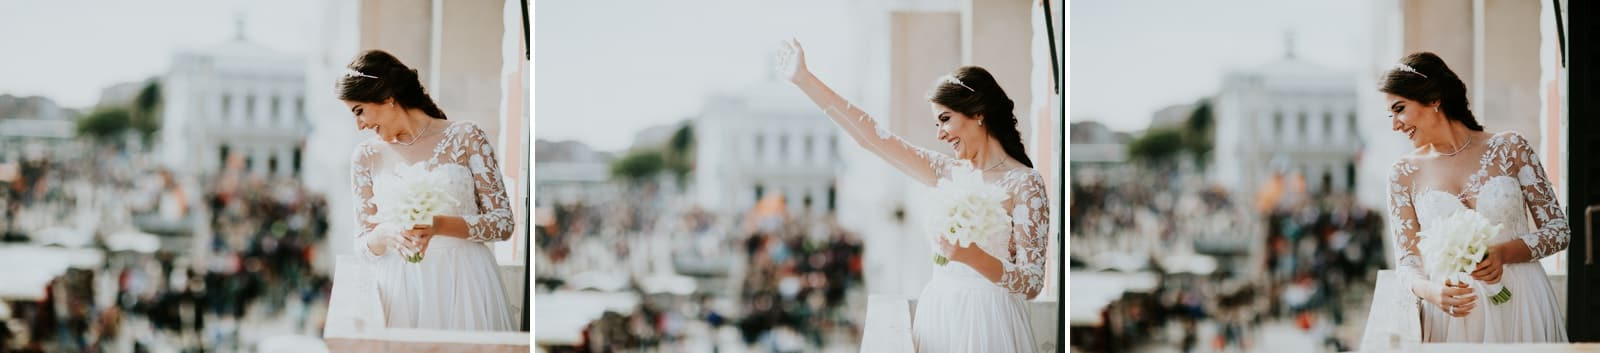 Destination Wedding Venice | Getting married in Italy